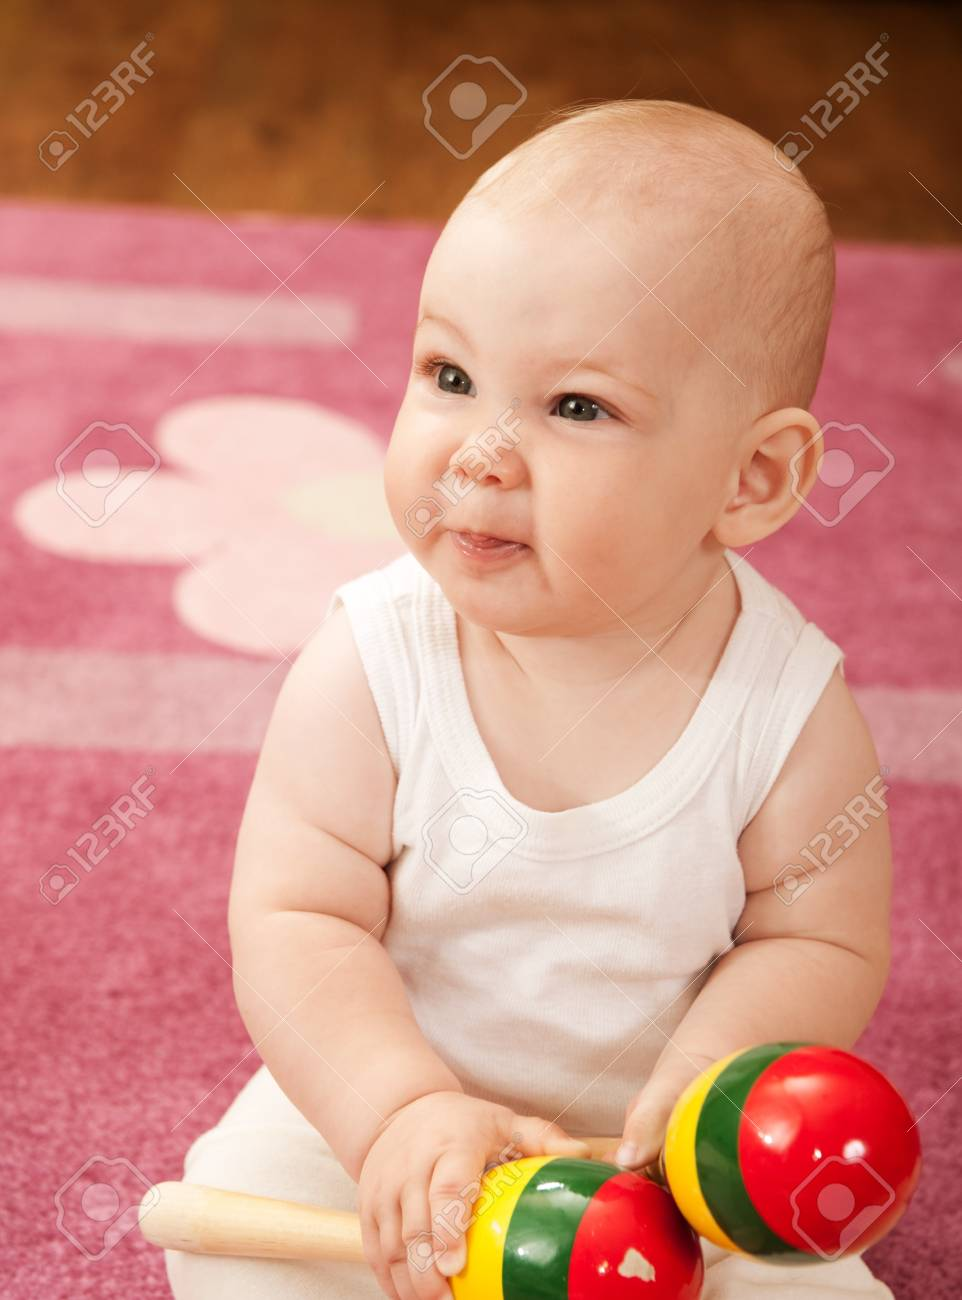 Cute baby girl s playing with toys in playroom Stock Photo - 9883953